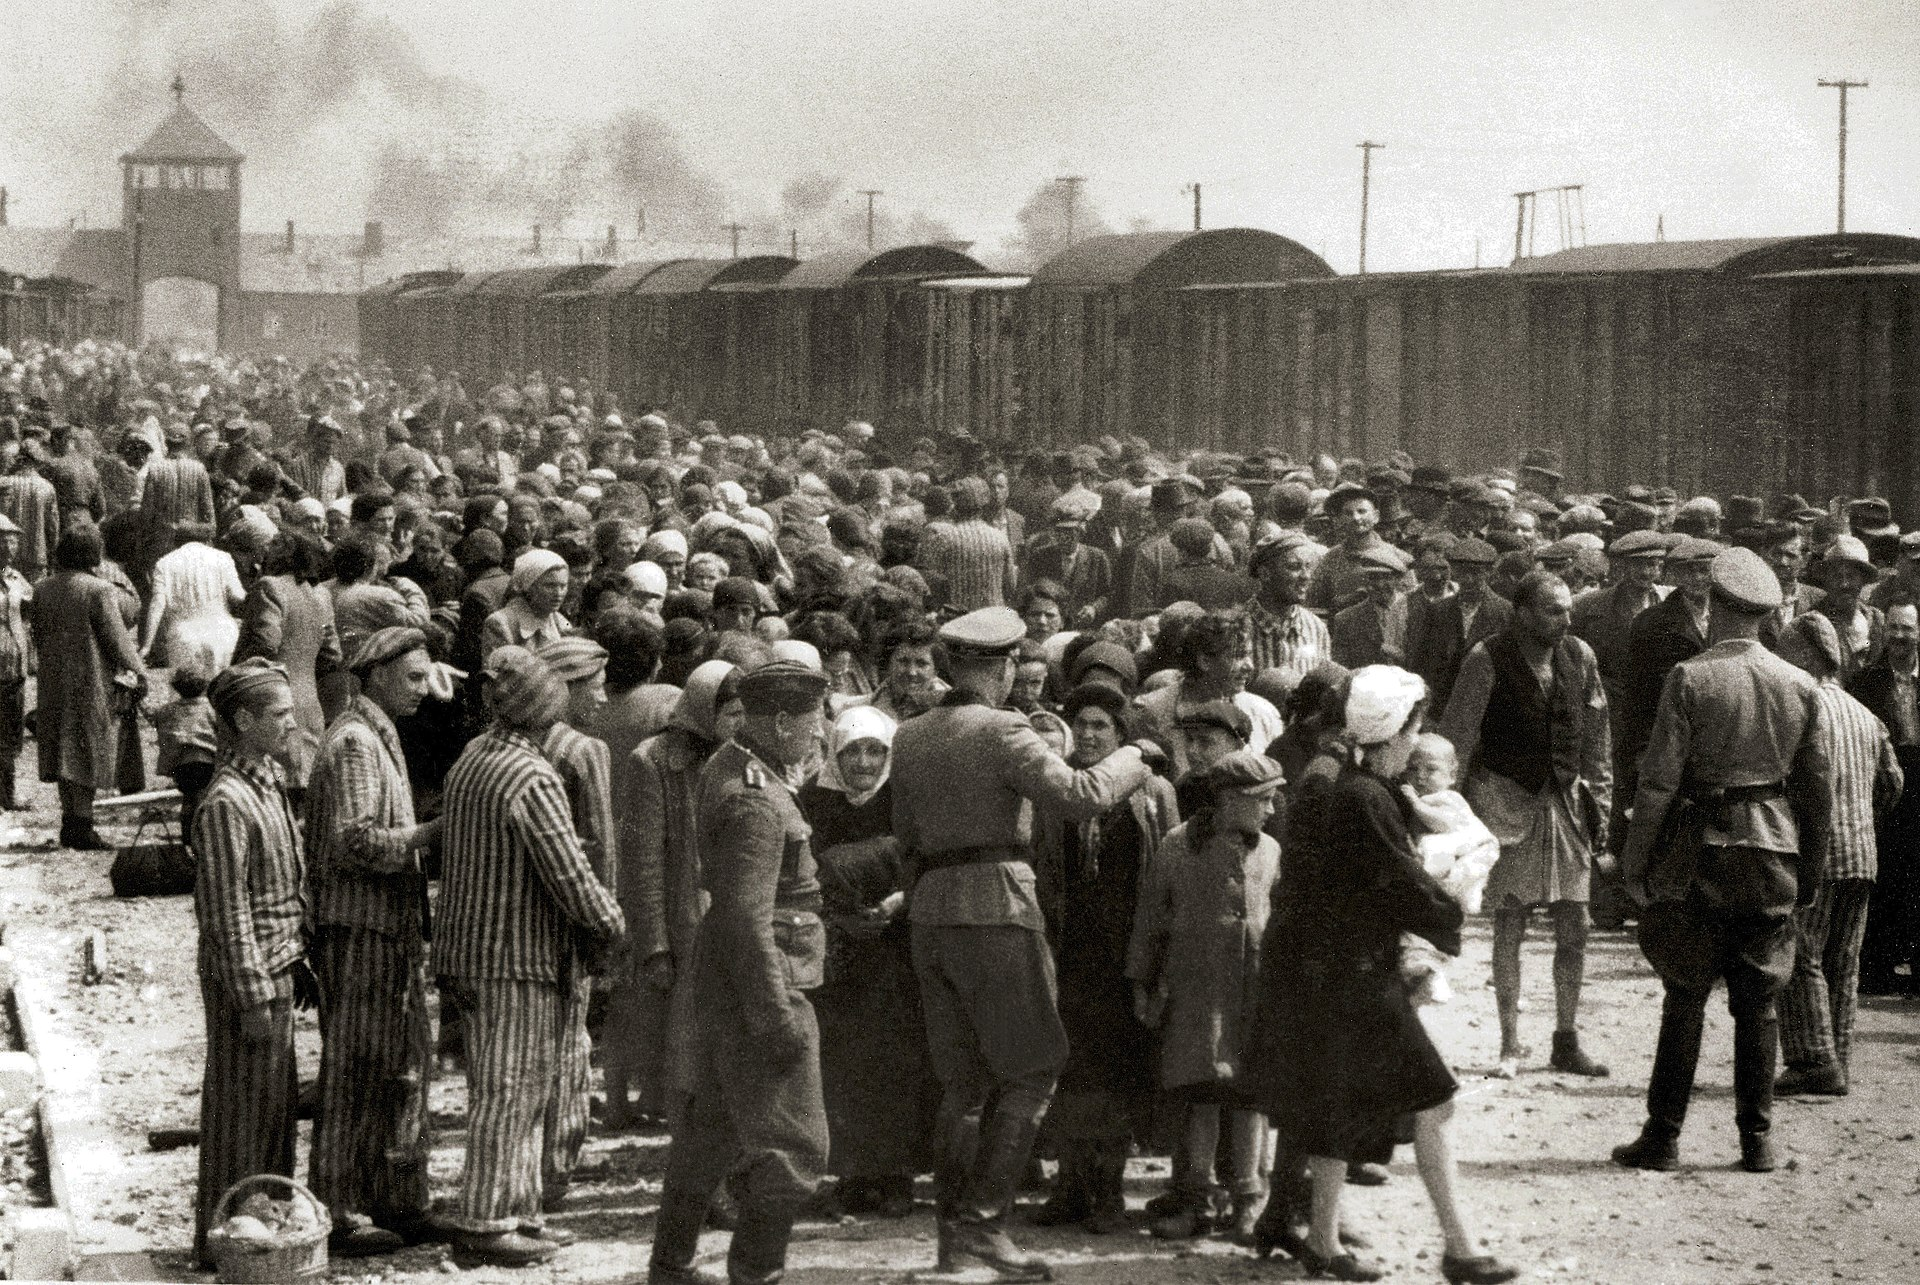 Selection on the ramp at Auschwitz-Birkenau, 1944 (Auschwitz Album) 1a.jpg